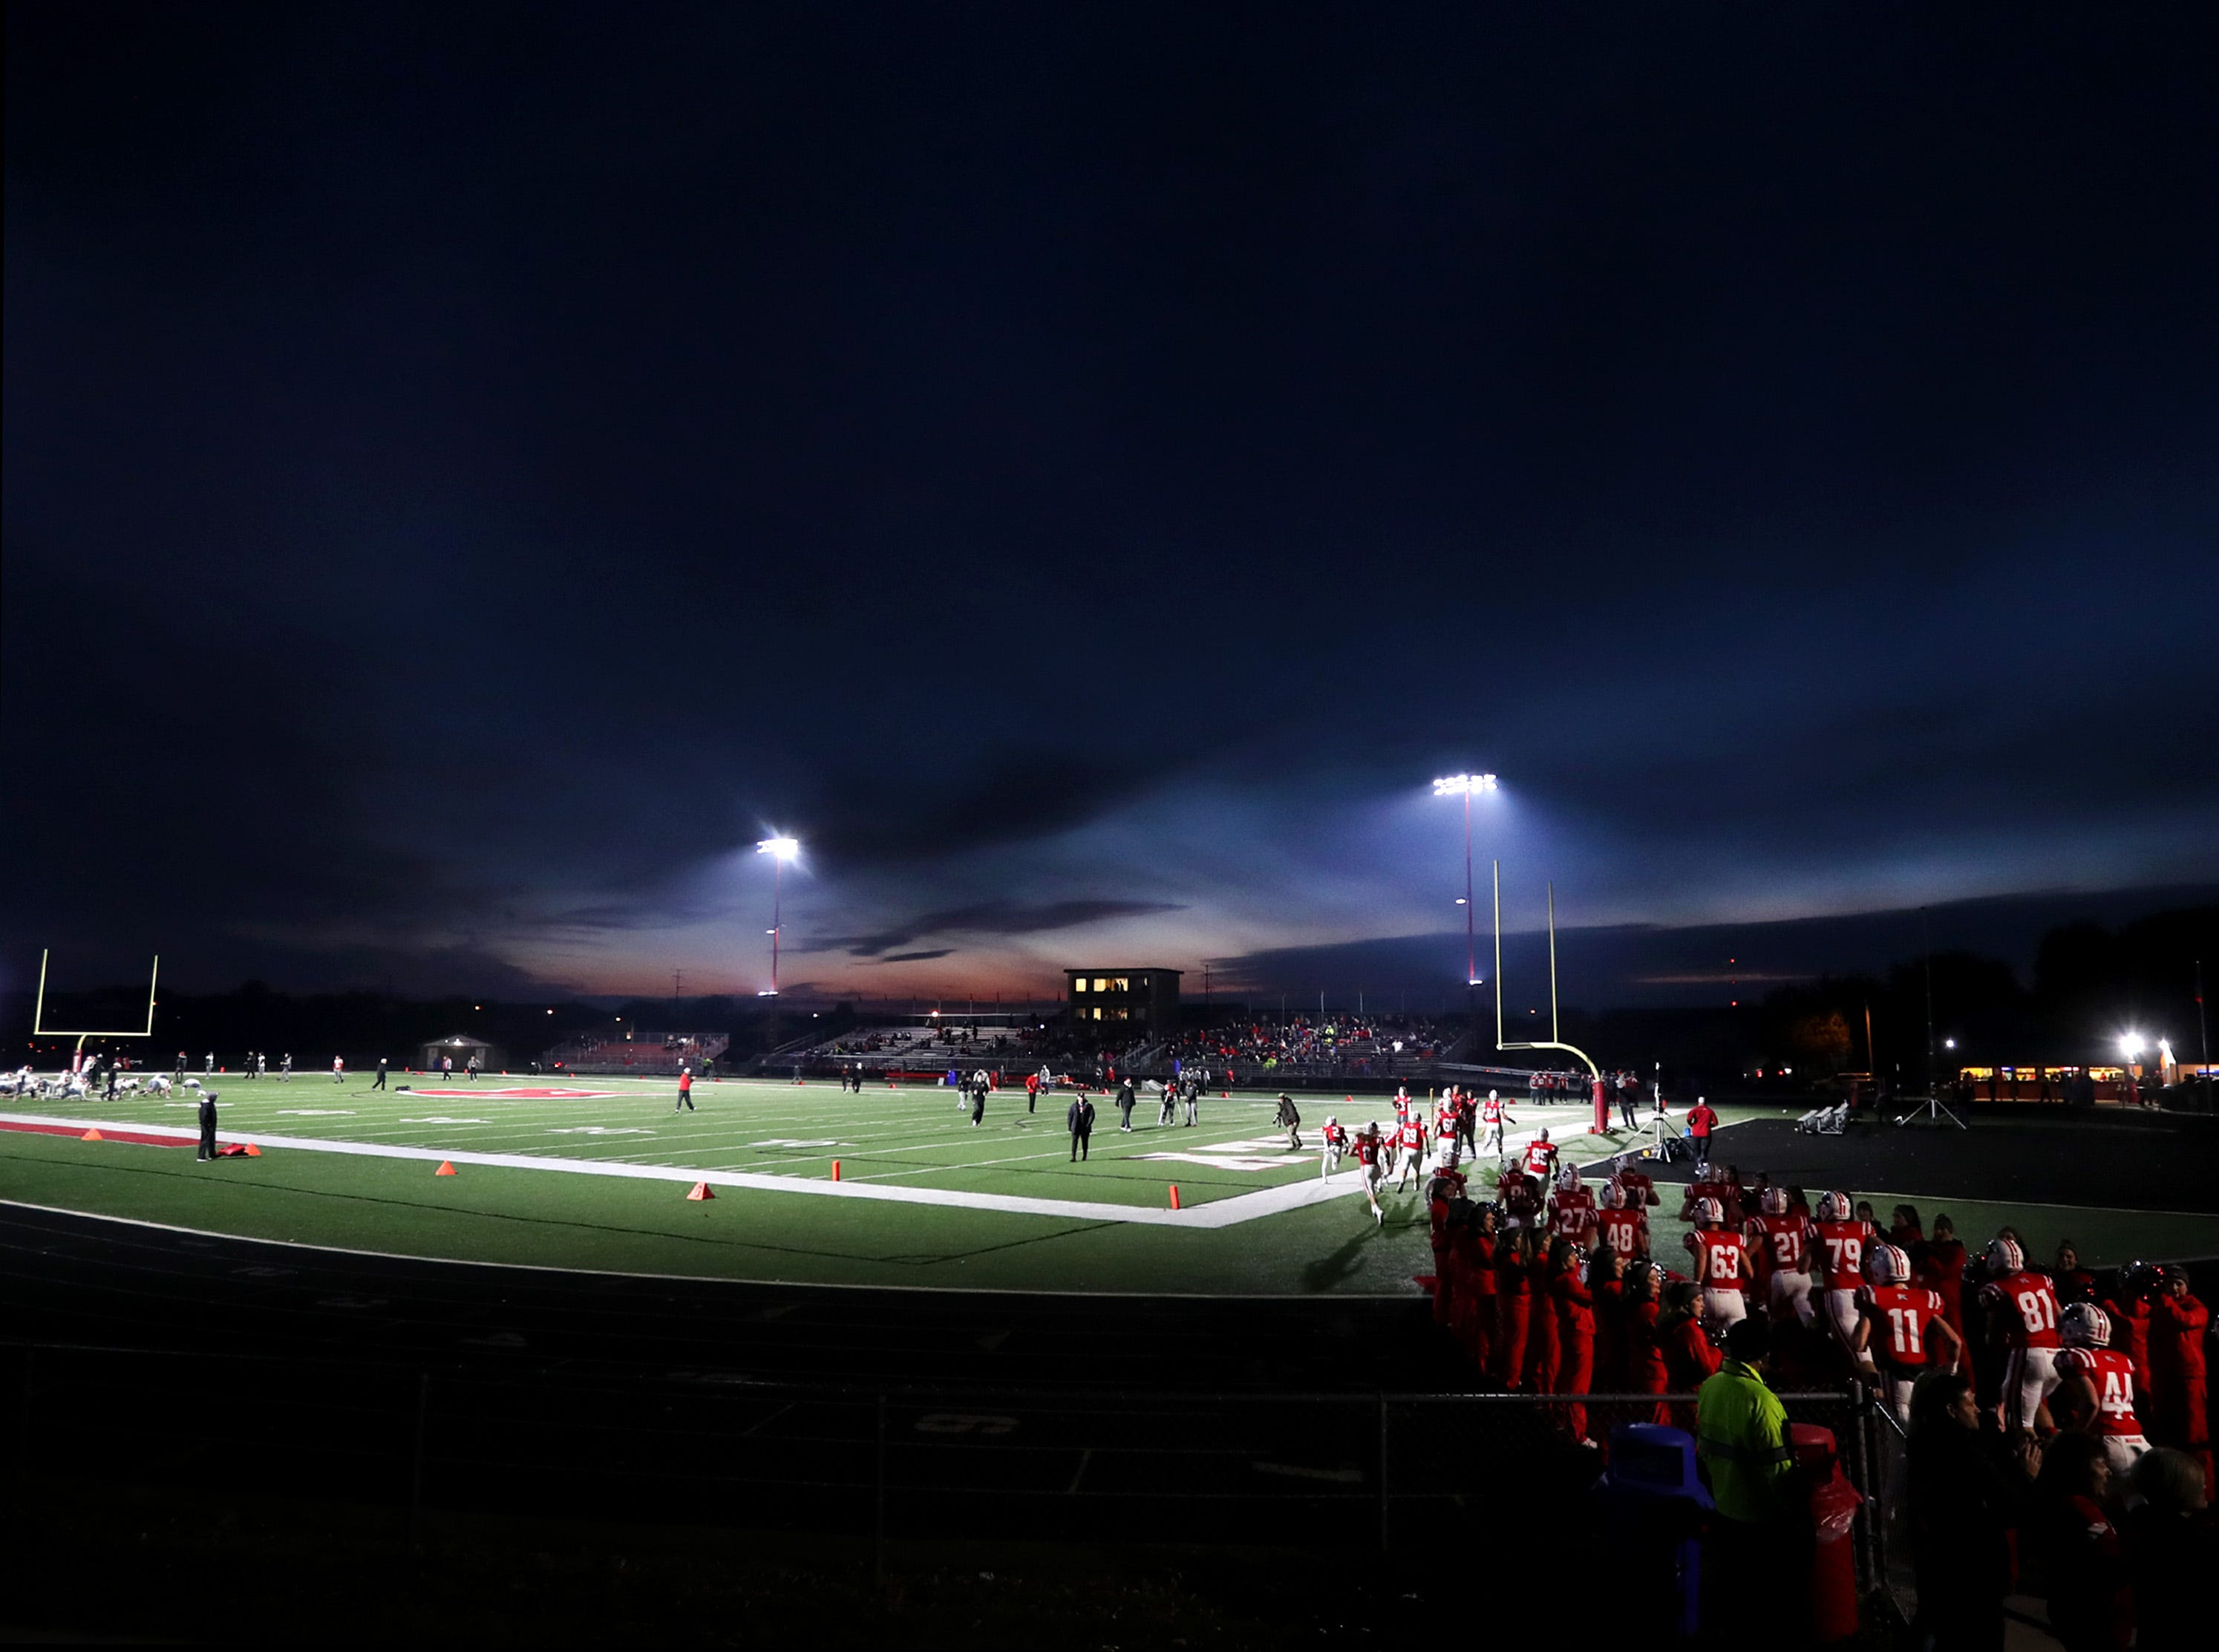 Kimberly High School players take to the field before their round 2 playoff game against Neenah High School Friday, Oct. 26, 2018, in Kimberly, Wis.